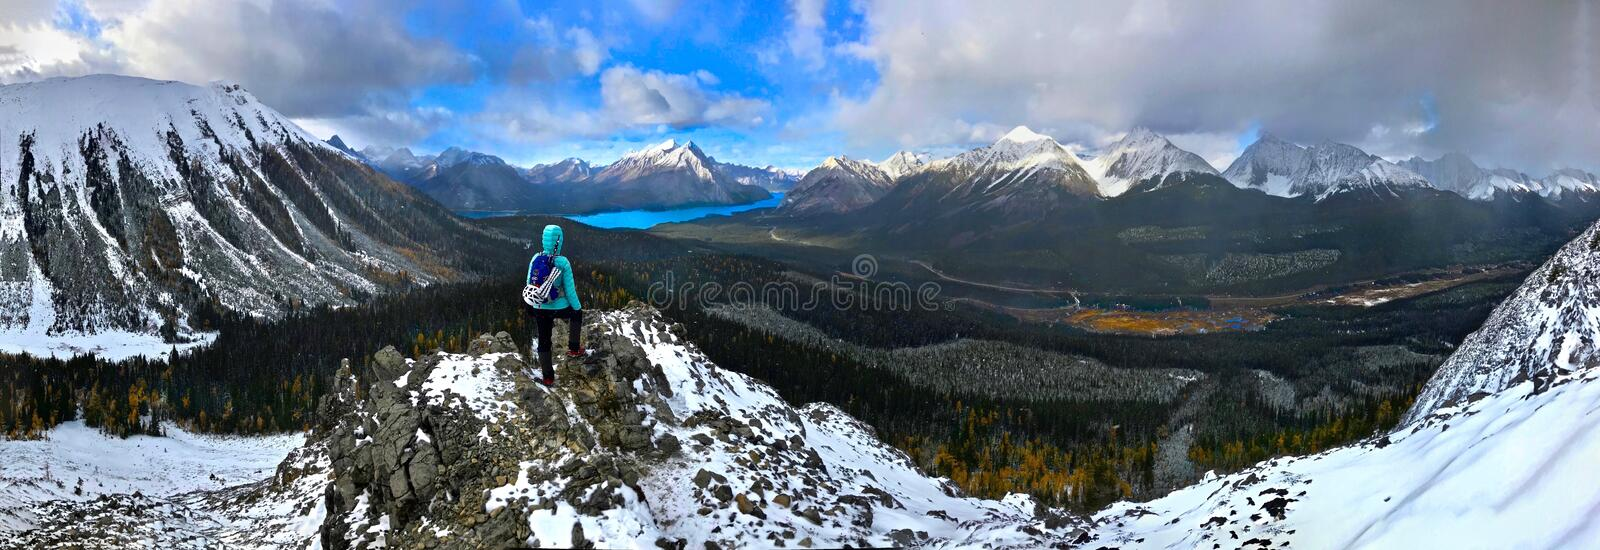 Woman on the mountain top looking at view of snow capped peaks and turquoise lake. royalty free stock photos